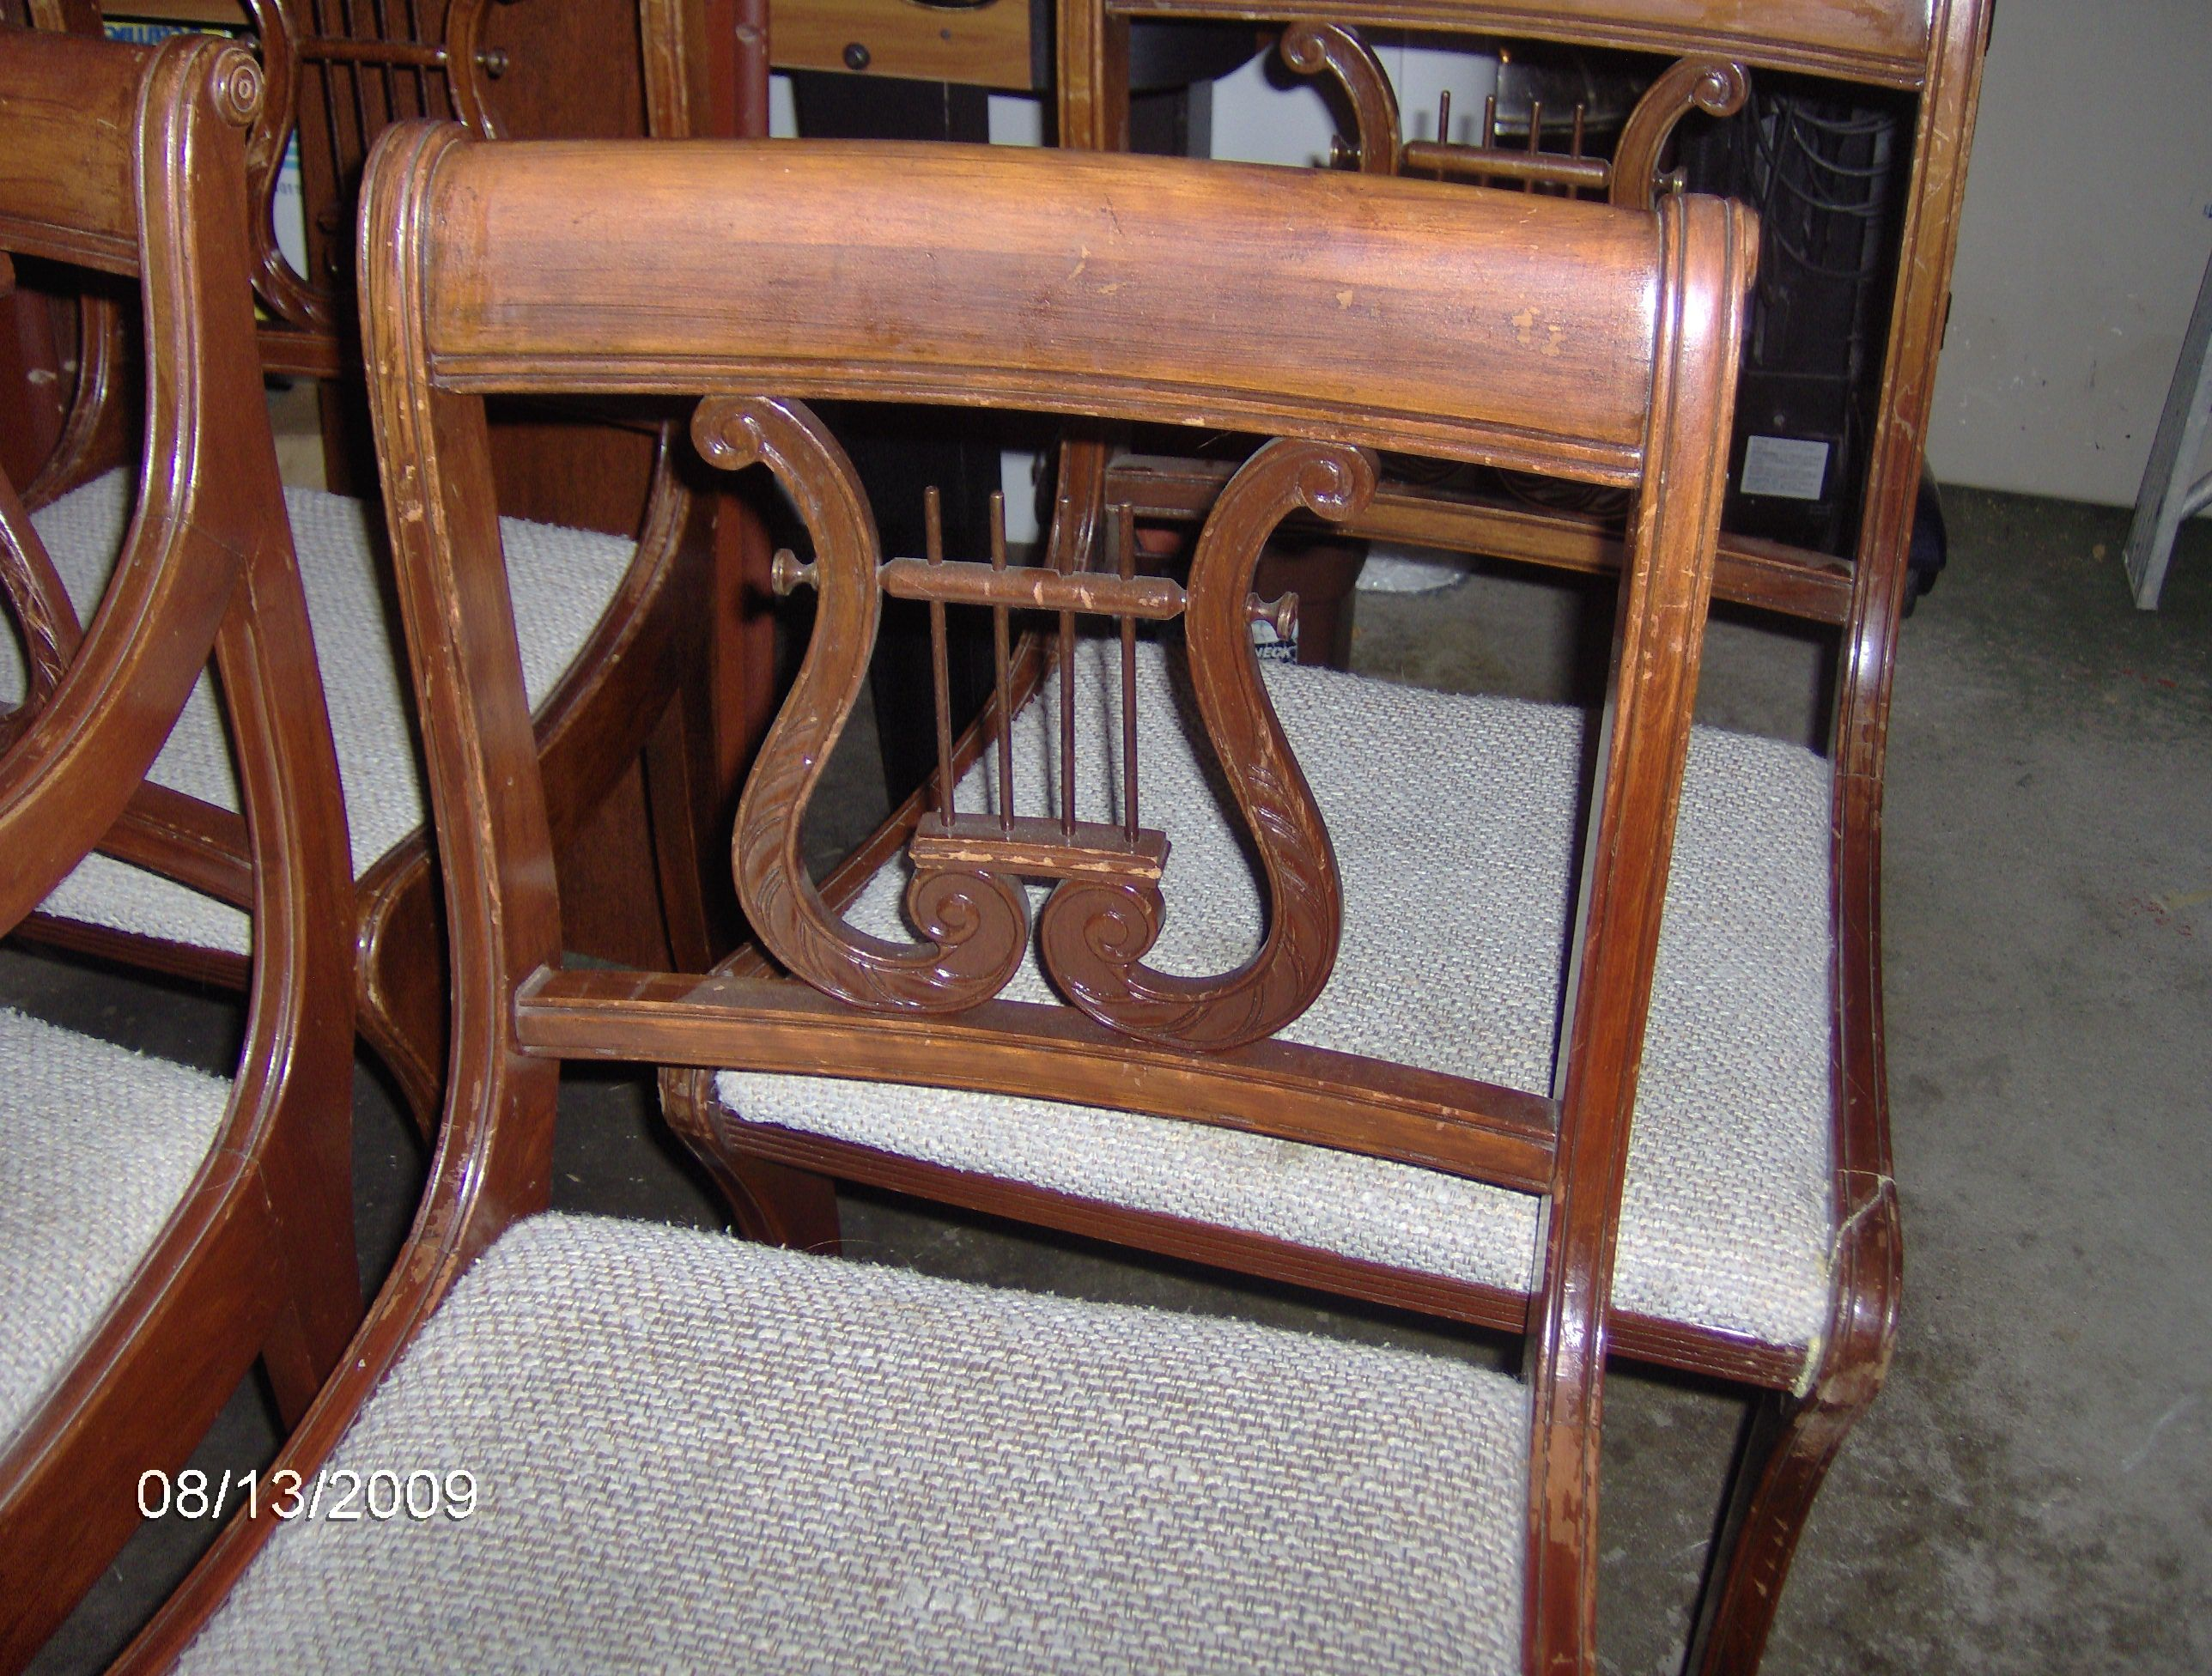 Antique Duncan Phyfe Drop Leaf Table And Chairs For Sale